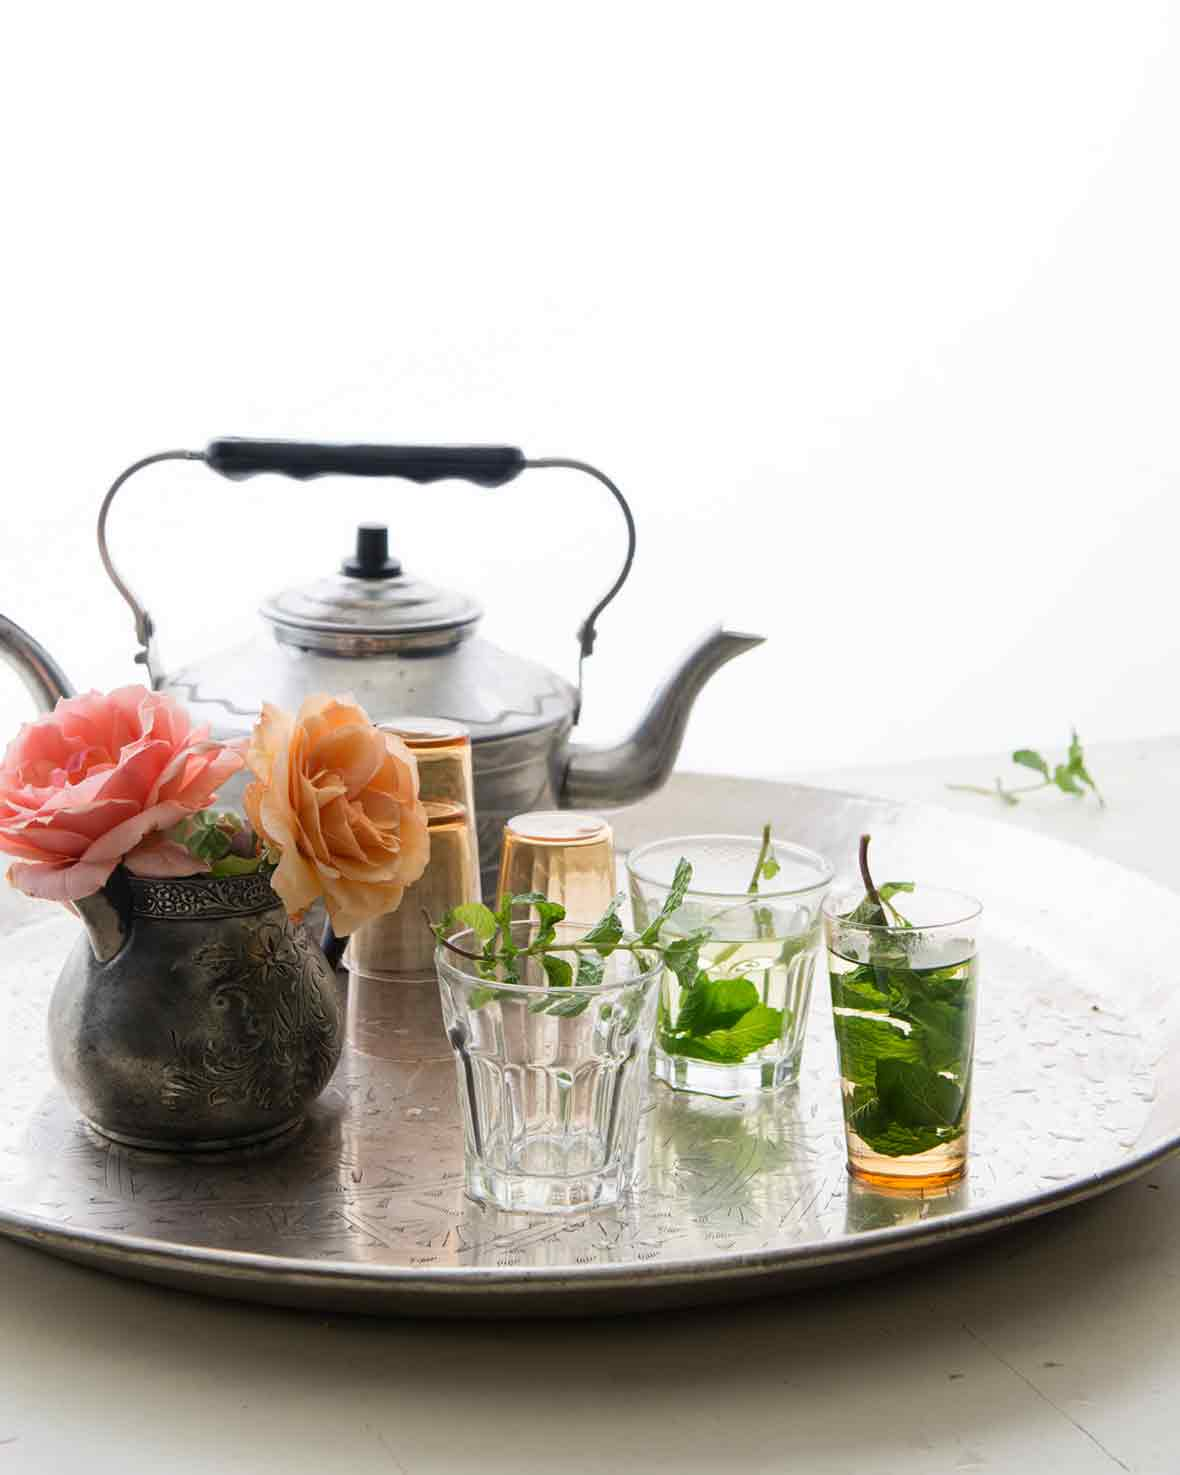 A teapot, a collection of glasses, three partially filled with mint tea, and a vase of flowers on a silver tray.